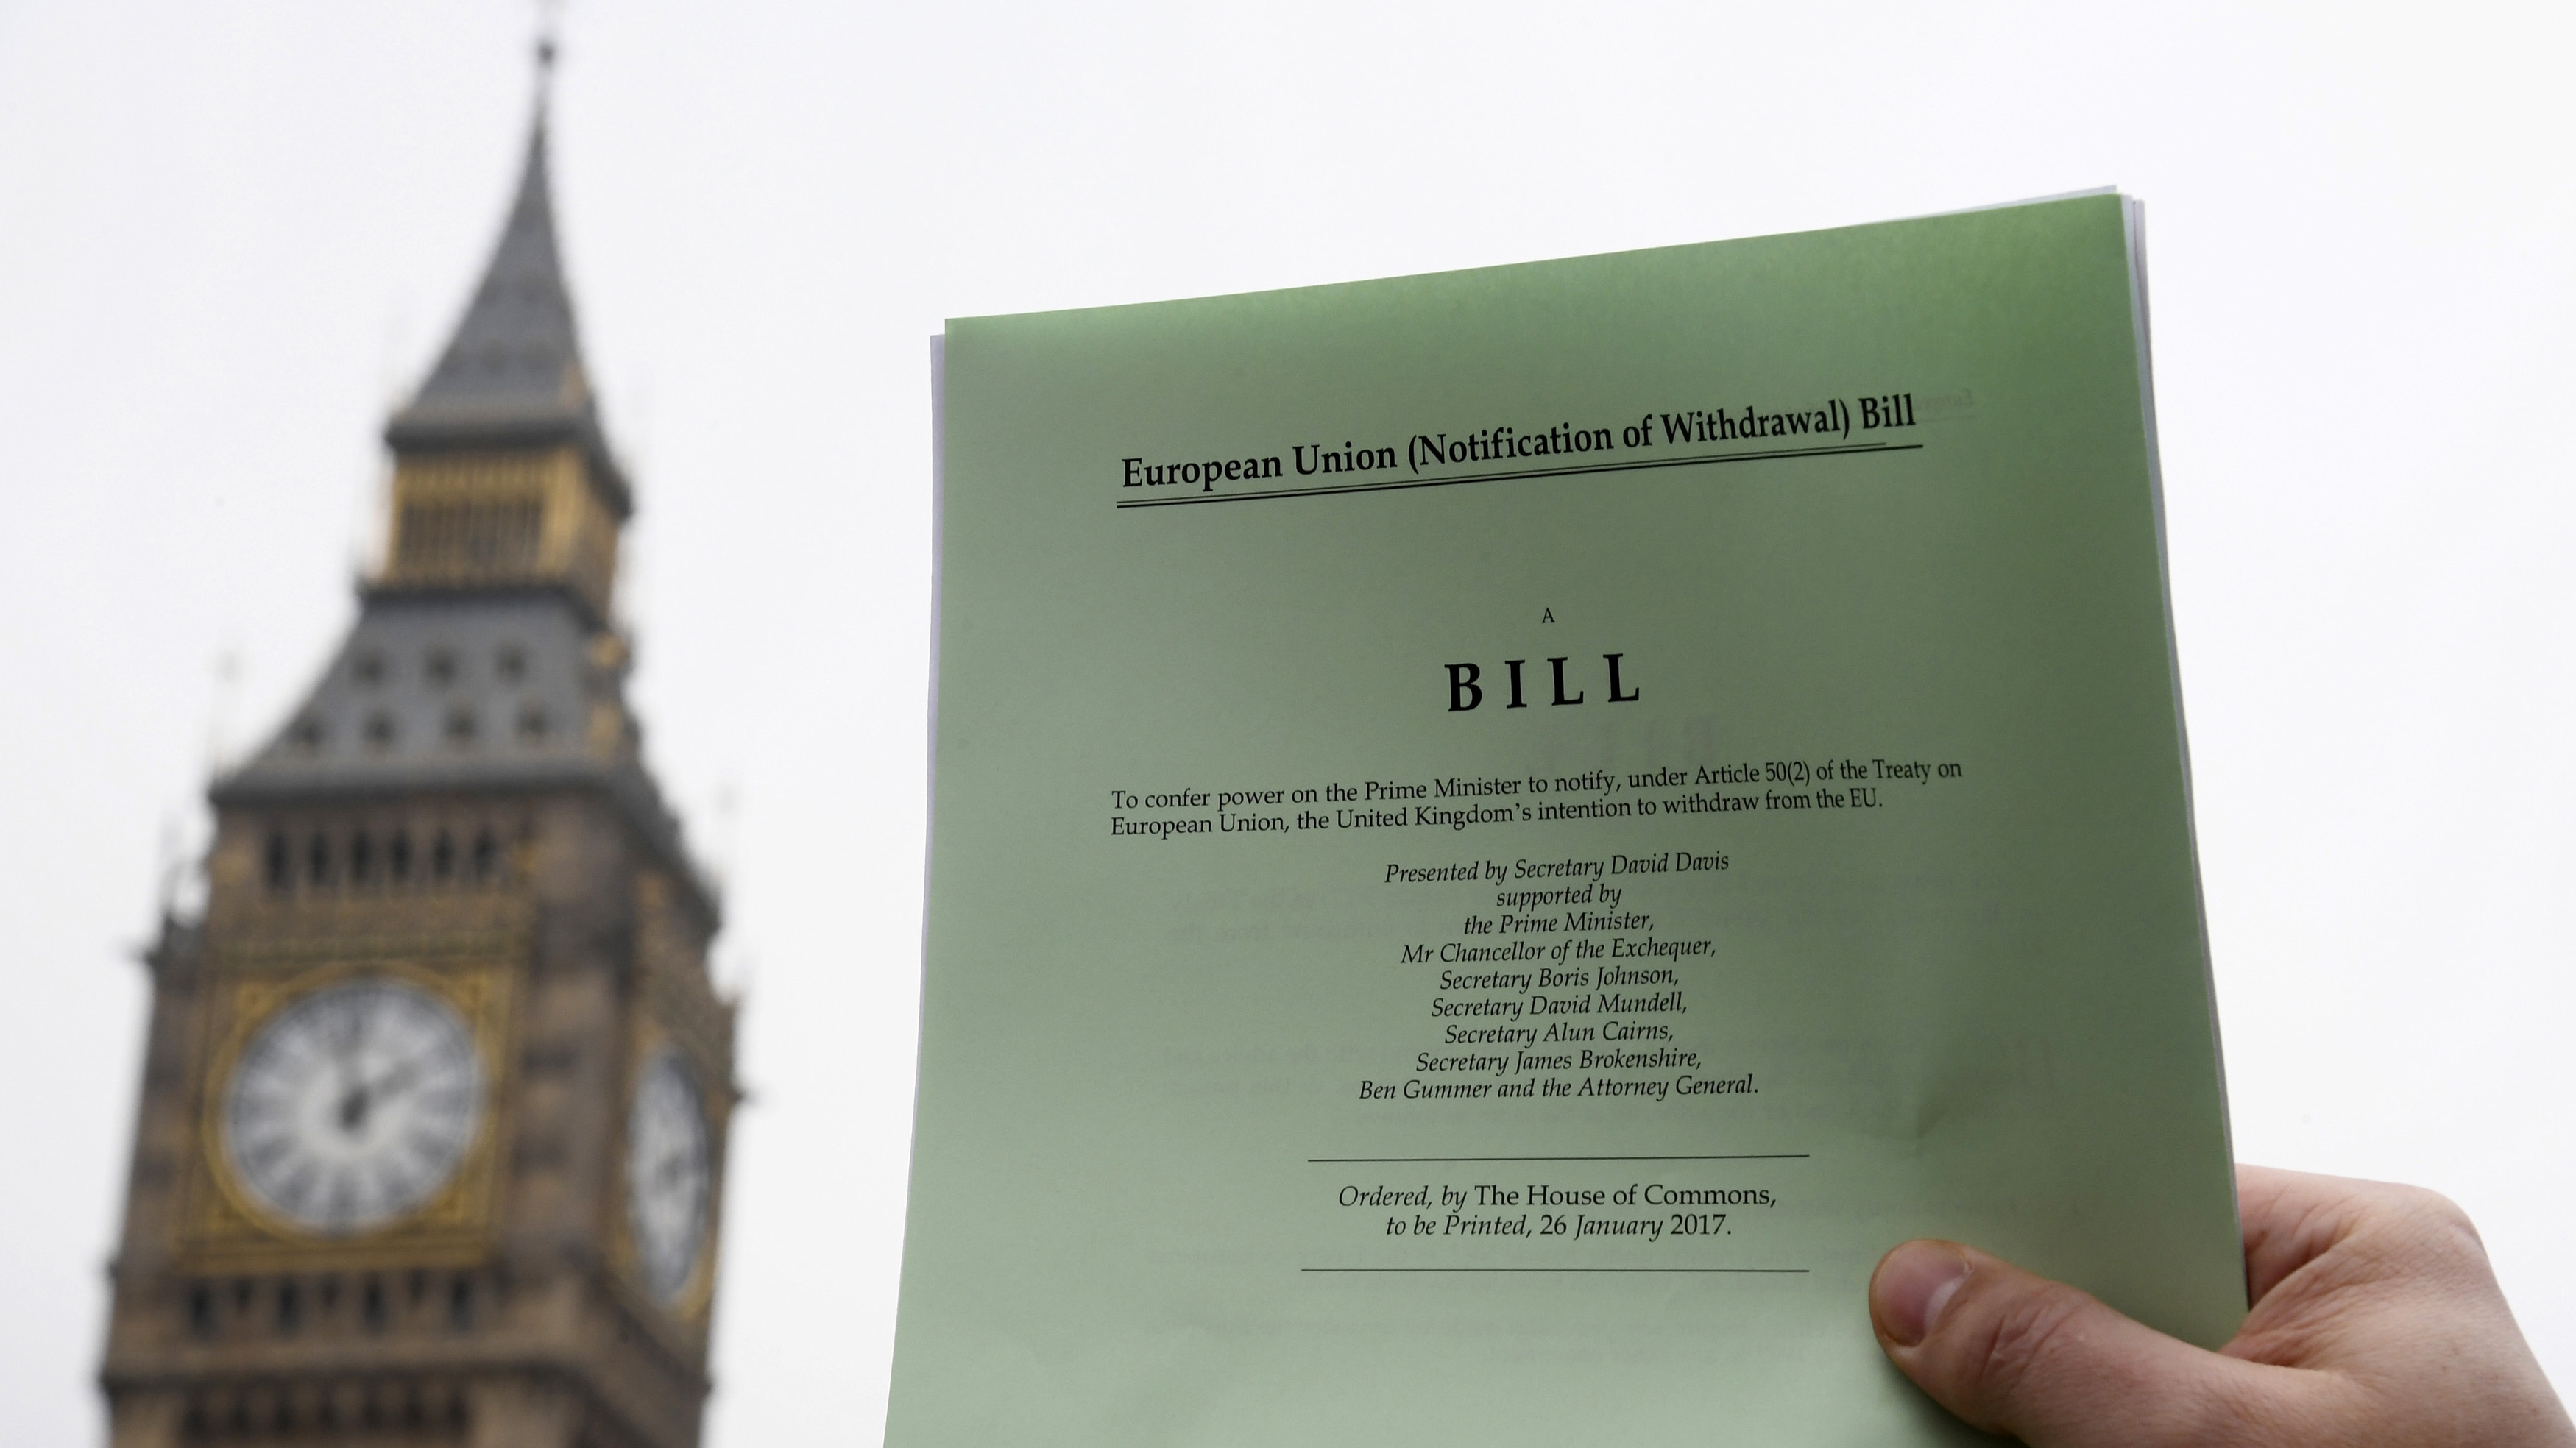 A journalist poses with a copy of the Brexit Article 50  bill, introduced by the government to seek parliamentary approval to start the process of leaving the European Union, in front of the Houses of Parliament in London, Britain, January 26, 2017. REUTERS/Toby Melville - RTSXHHR